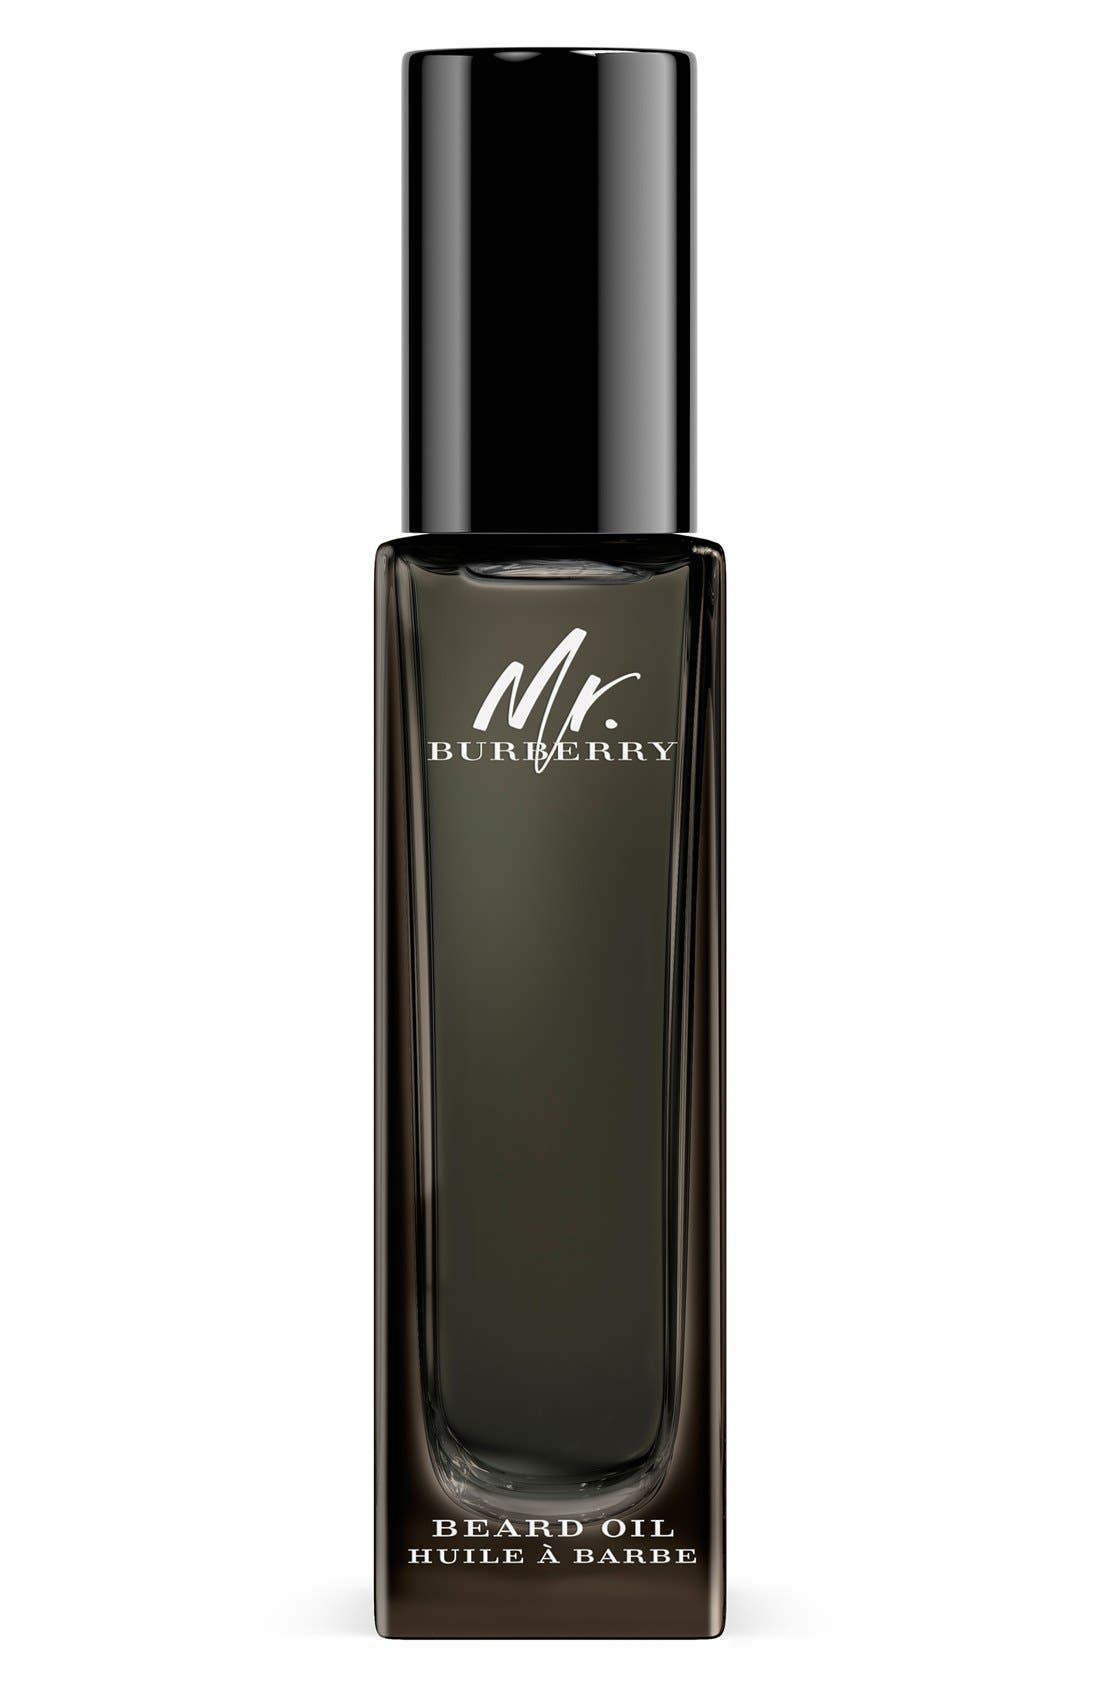 Burberry 'Mr. Burberry' Beard Oil